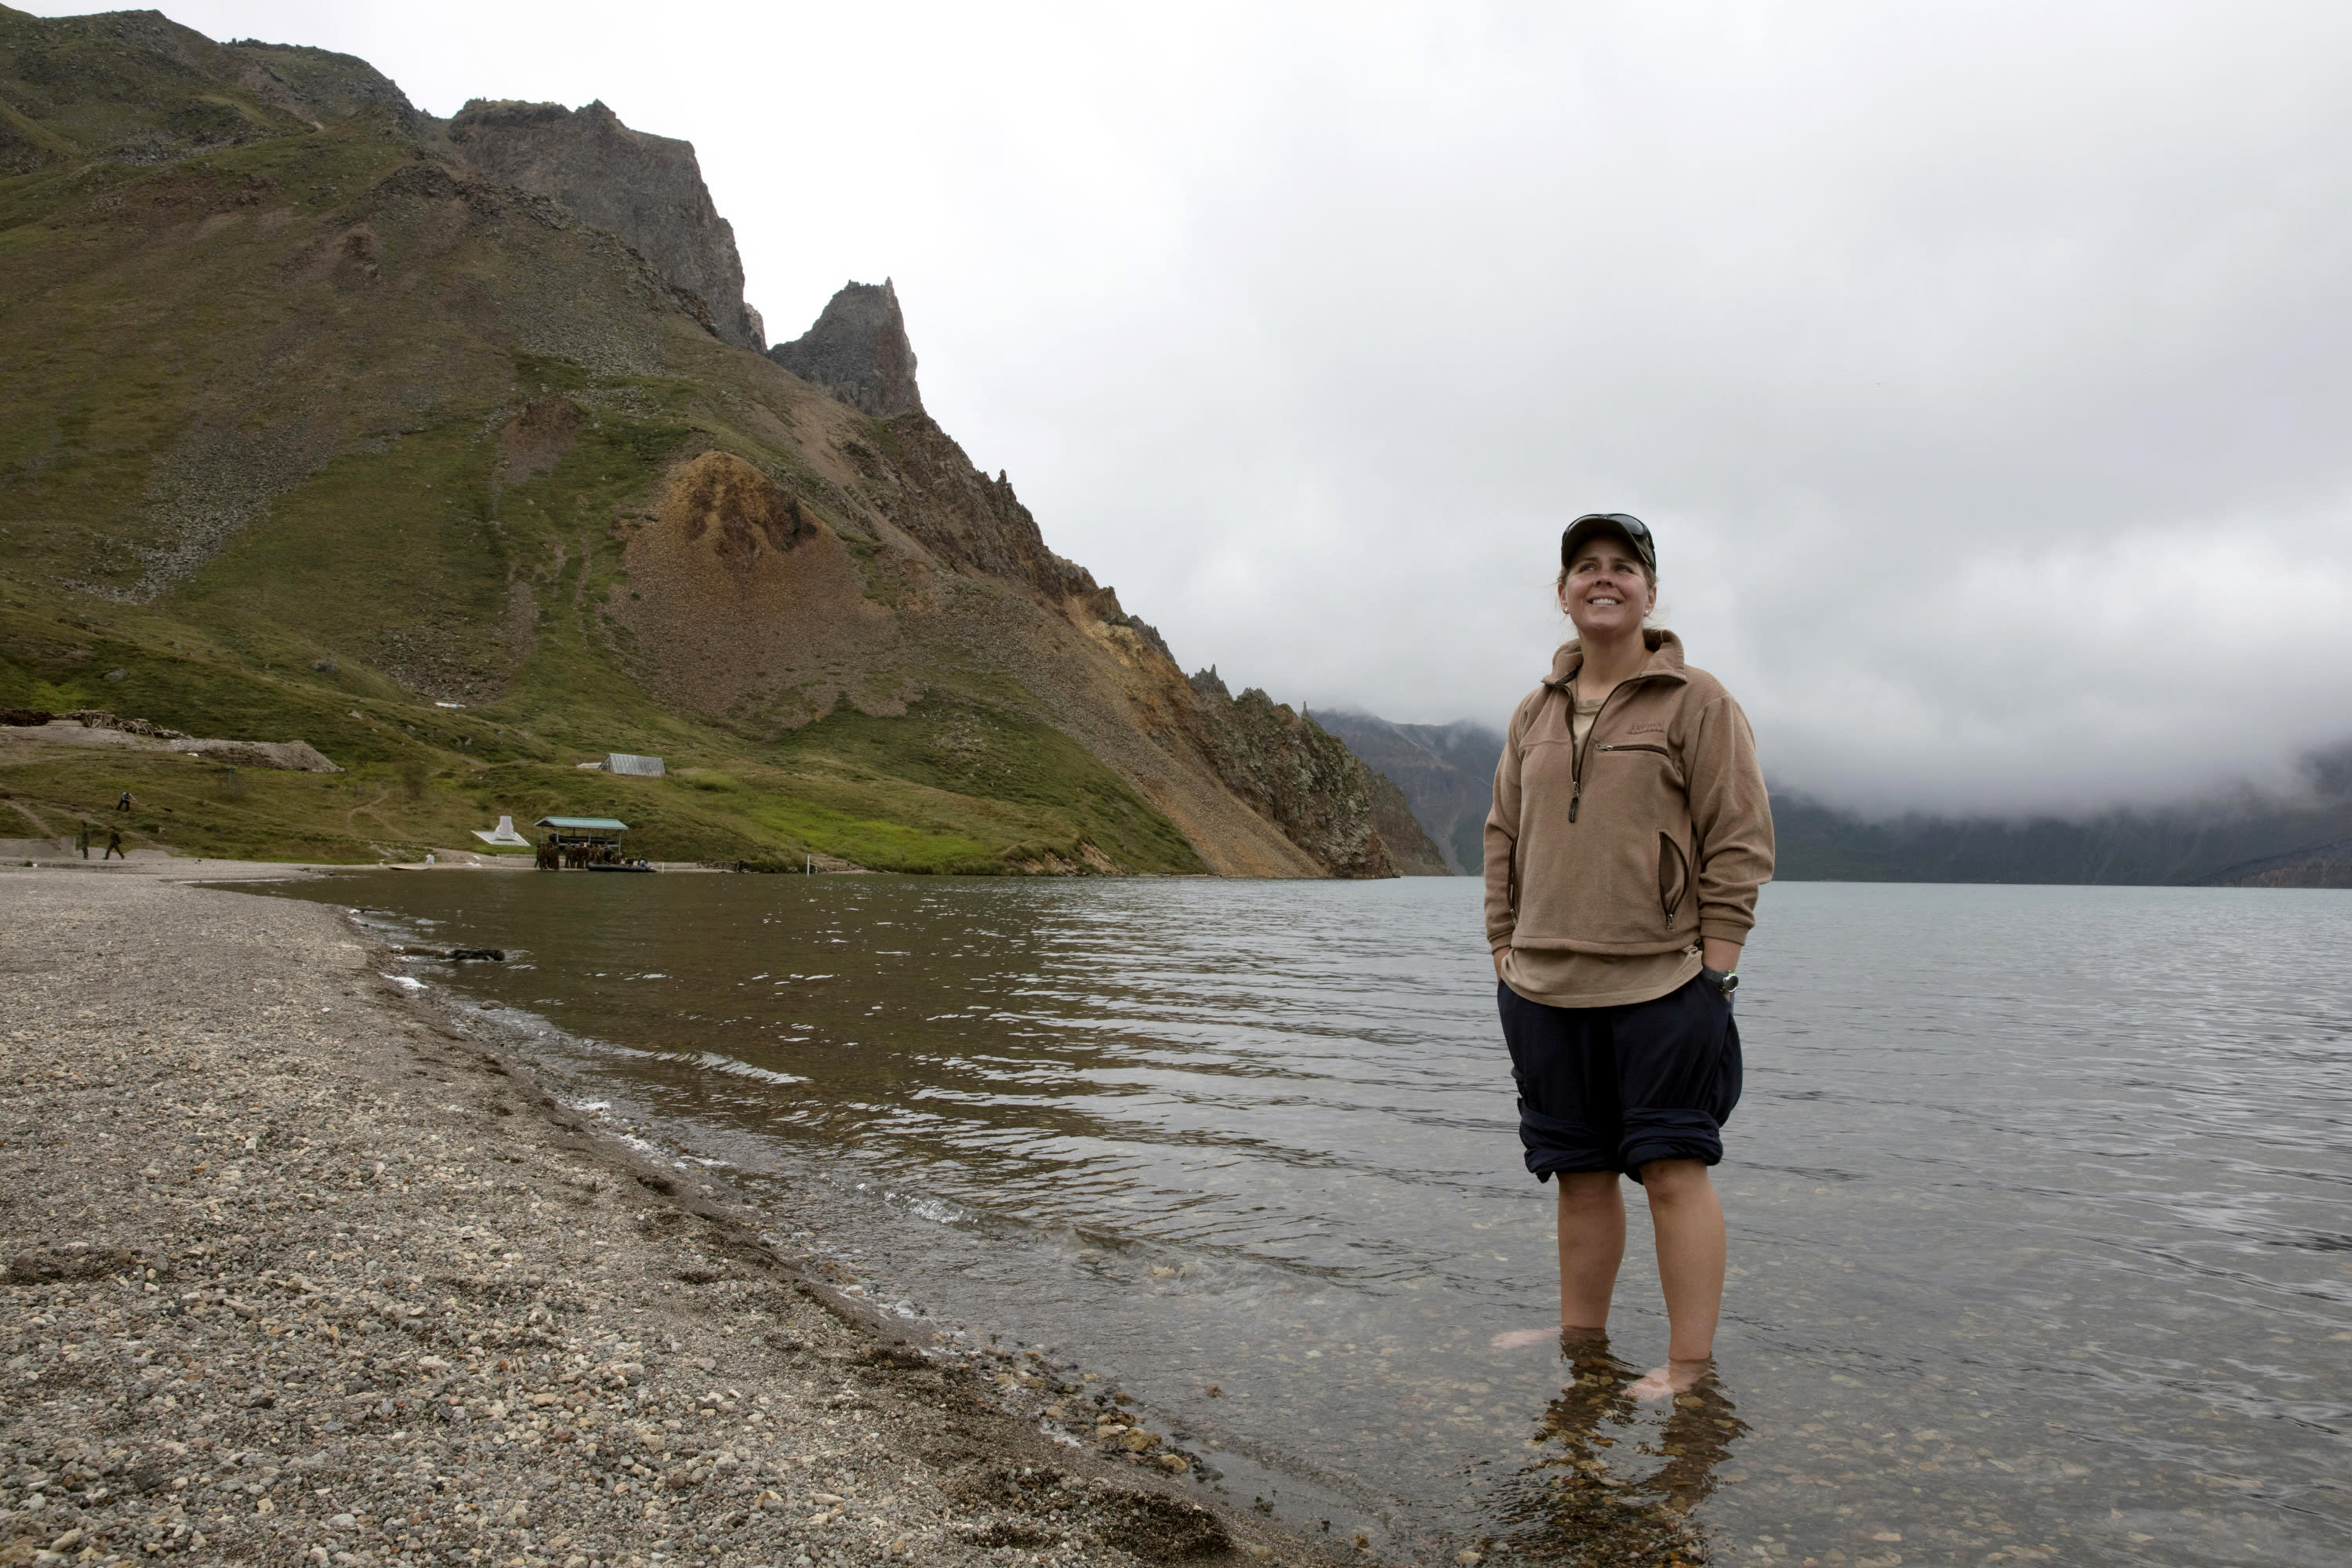 In this Saturday, Aug. 18, 2018, photo, Sinead of Australia stands in the cool water of Lake Chon during a hike arranged by Roger Shepherd of Hike Korea on Mount Paektu in North Korea. Hoping to open up a side of North Korea rarely seen by outsiders, Shepherd, a New Zealander who has extensive experience climbing the mountains of North and South Korea is leading the first group of foreign tourists allowed to trek off road and camp out under the stars on Mount Paektu, a huge volcano that straddles the border that separates China and North Korea. (AP Photo/Ng Han Guan)